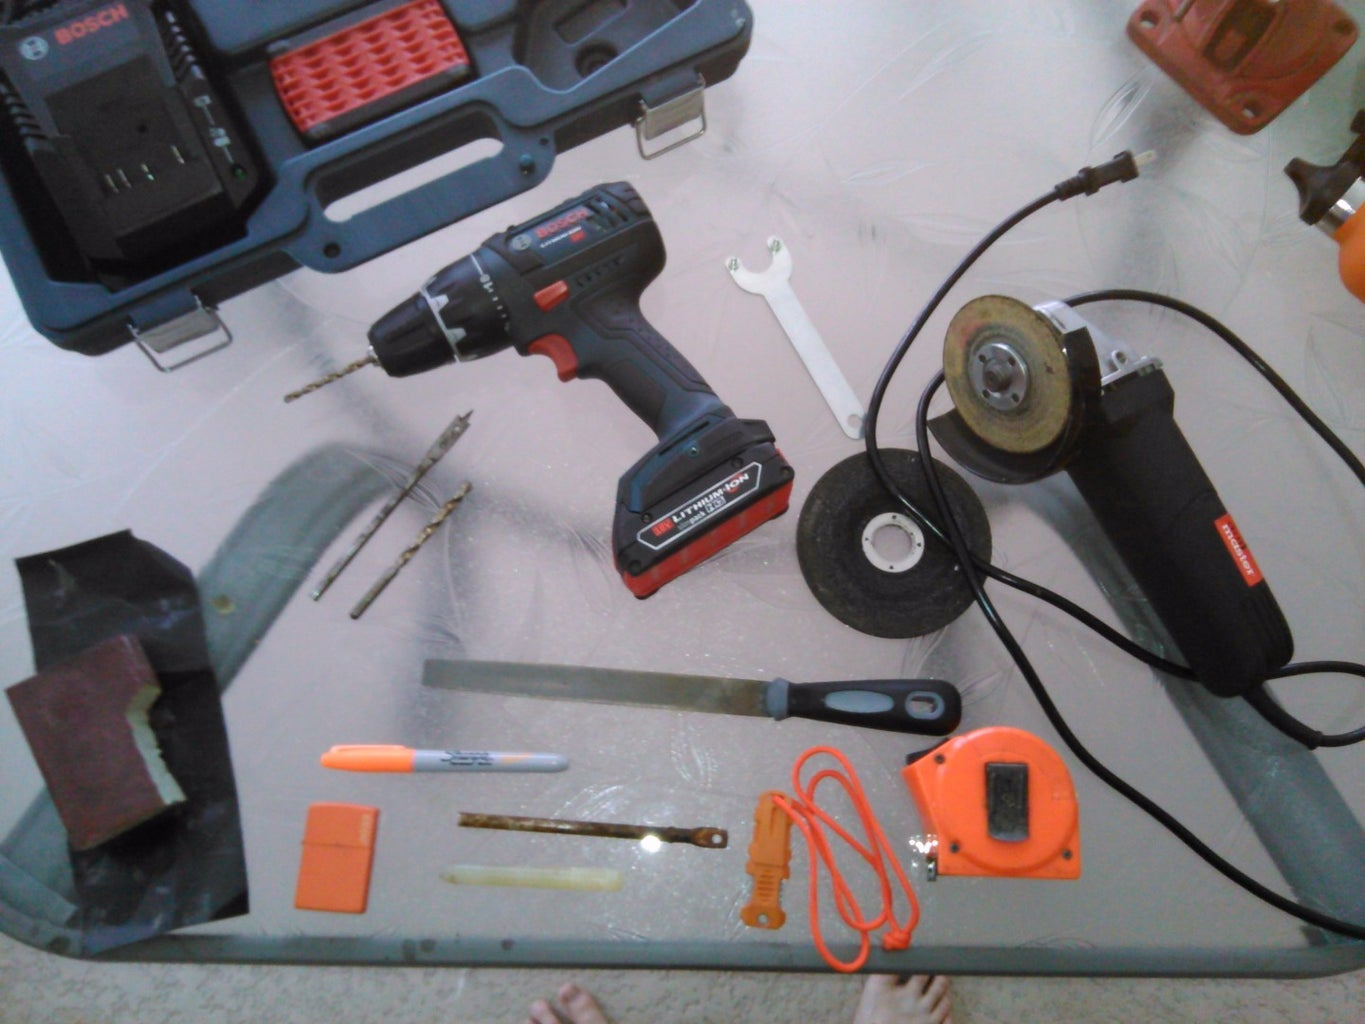 Tools and What Is Needed